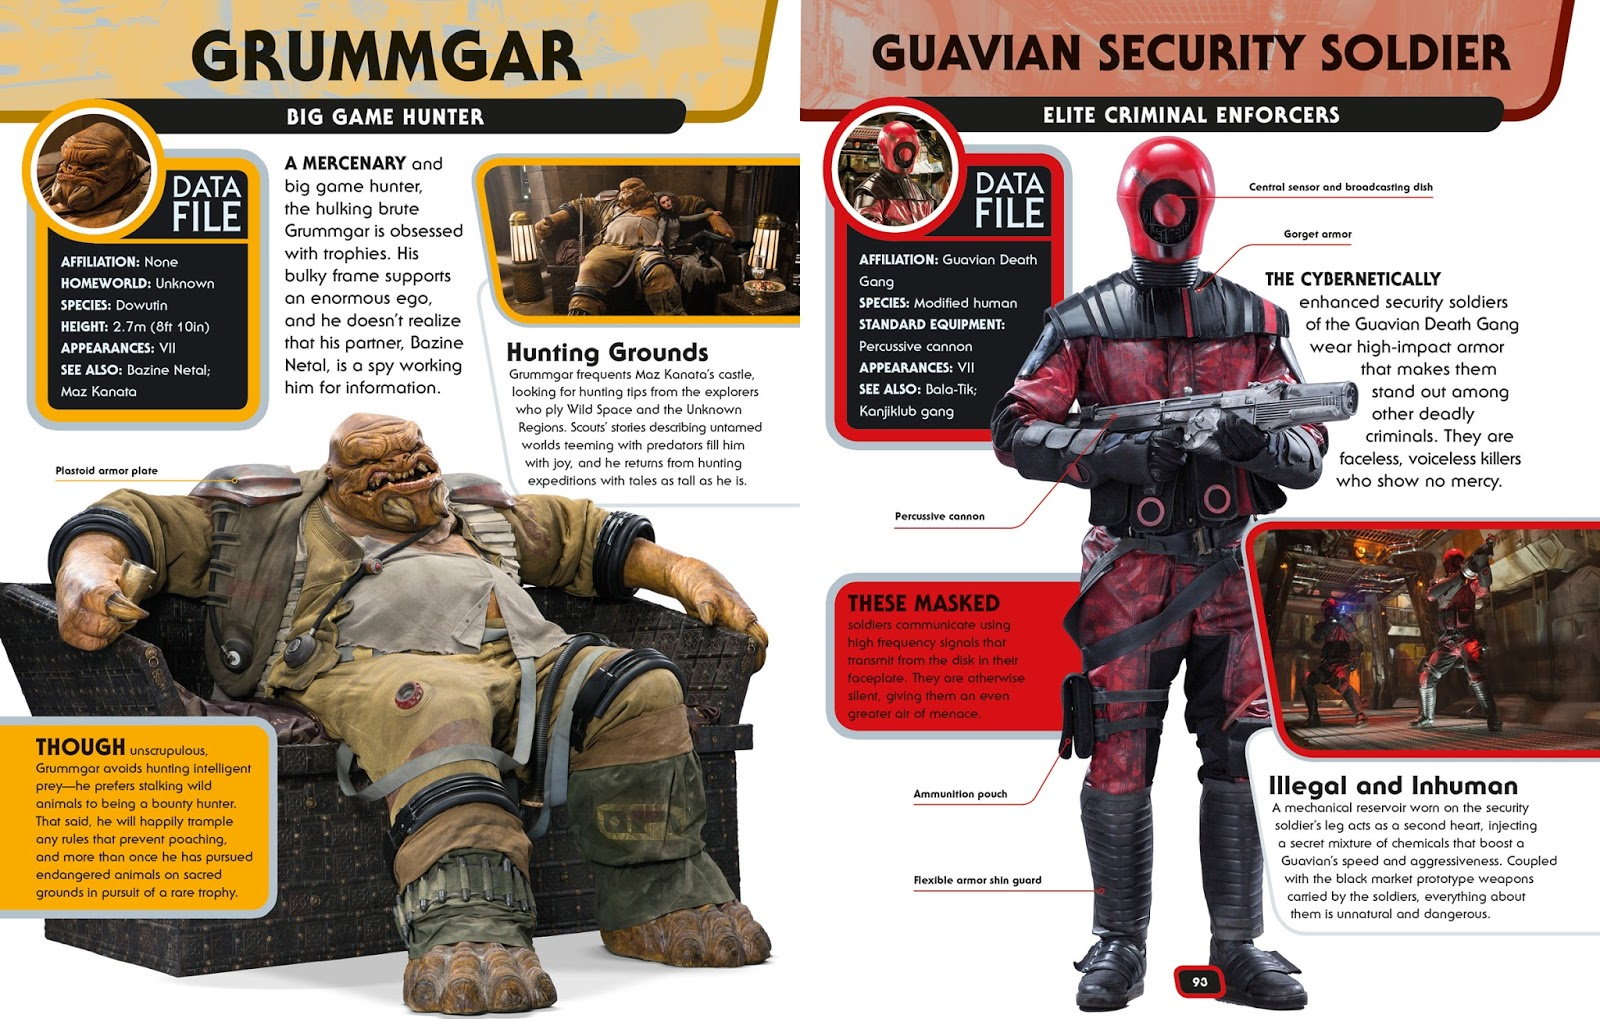 Star Wars The Force Awakens Visual Dictionary Pdf